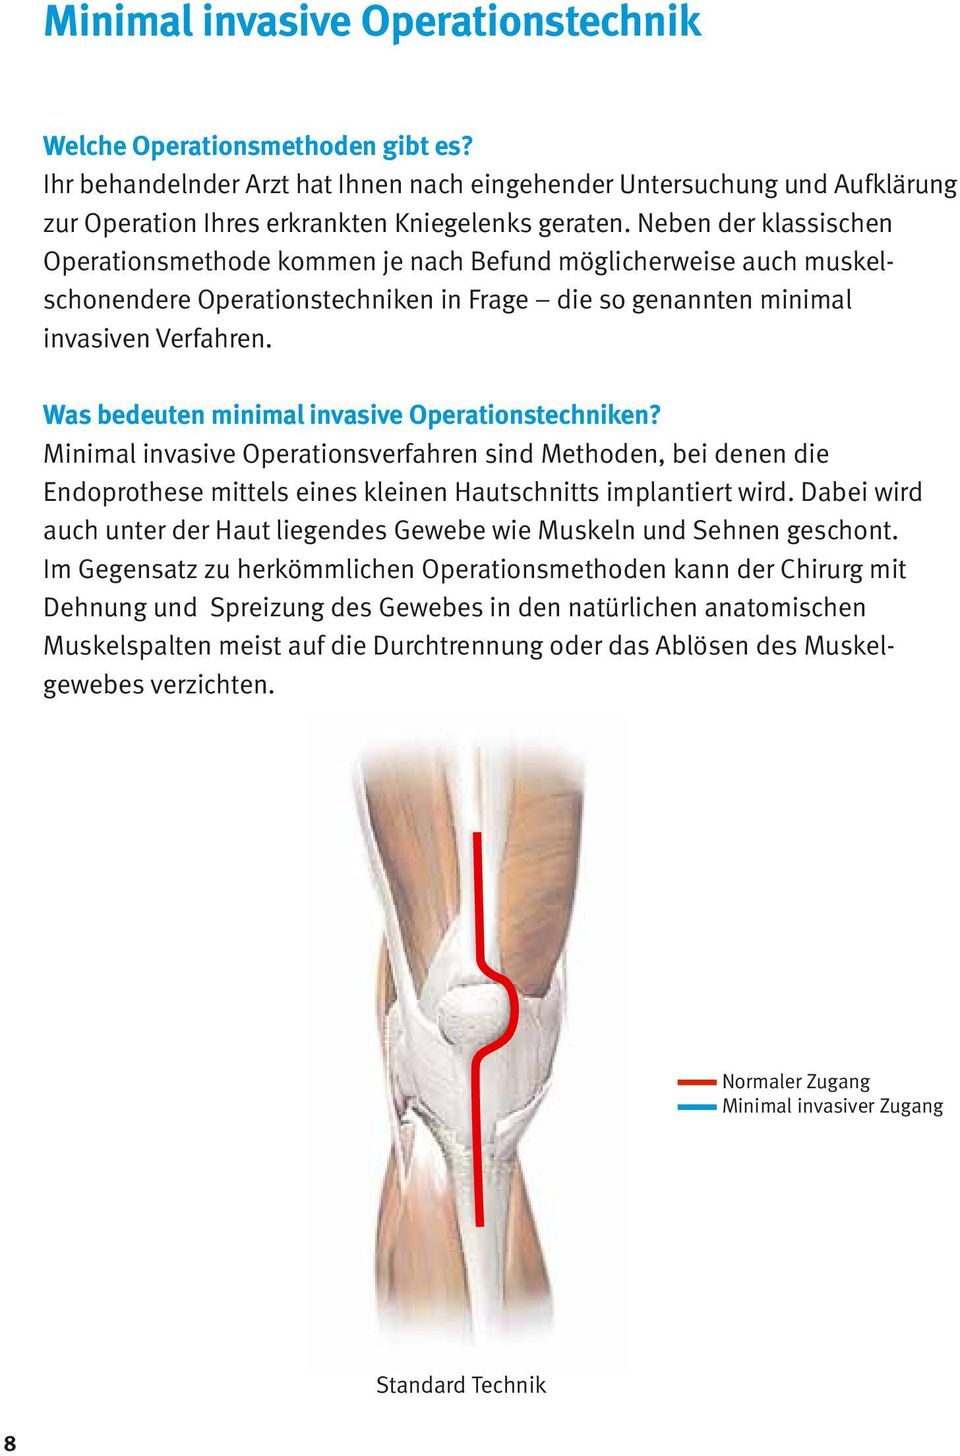 Was bedeuten minimal invasive Operationstechniken? Minimal invasive Operationsverfahren sind Methoden, bei denen die Endoprothese mittels eines kleinen Hautschnitts implantiert wird.